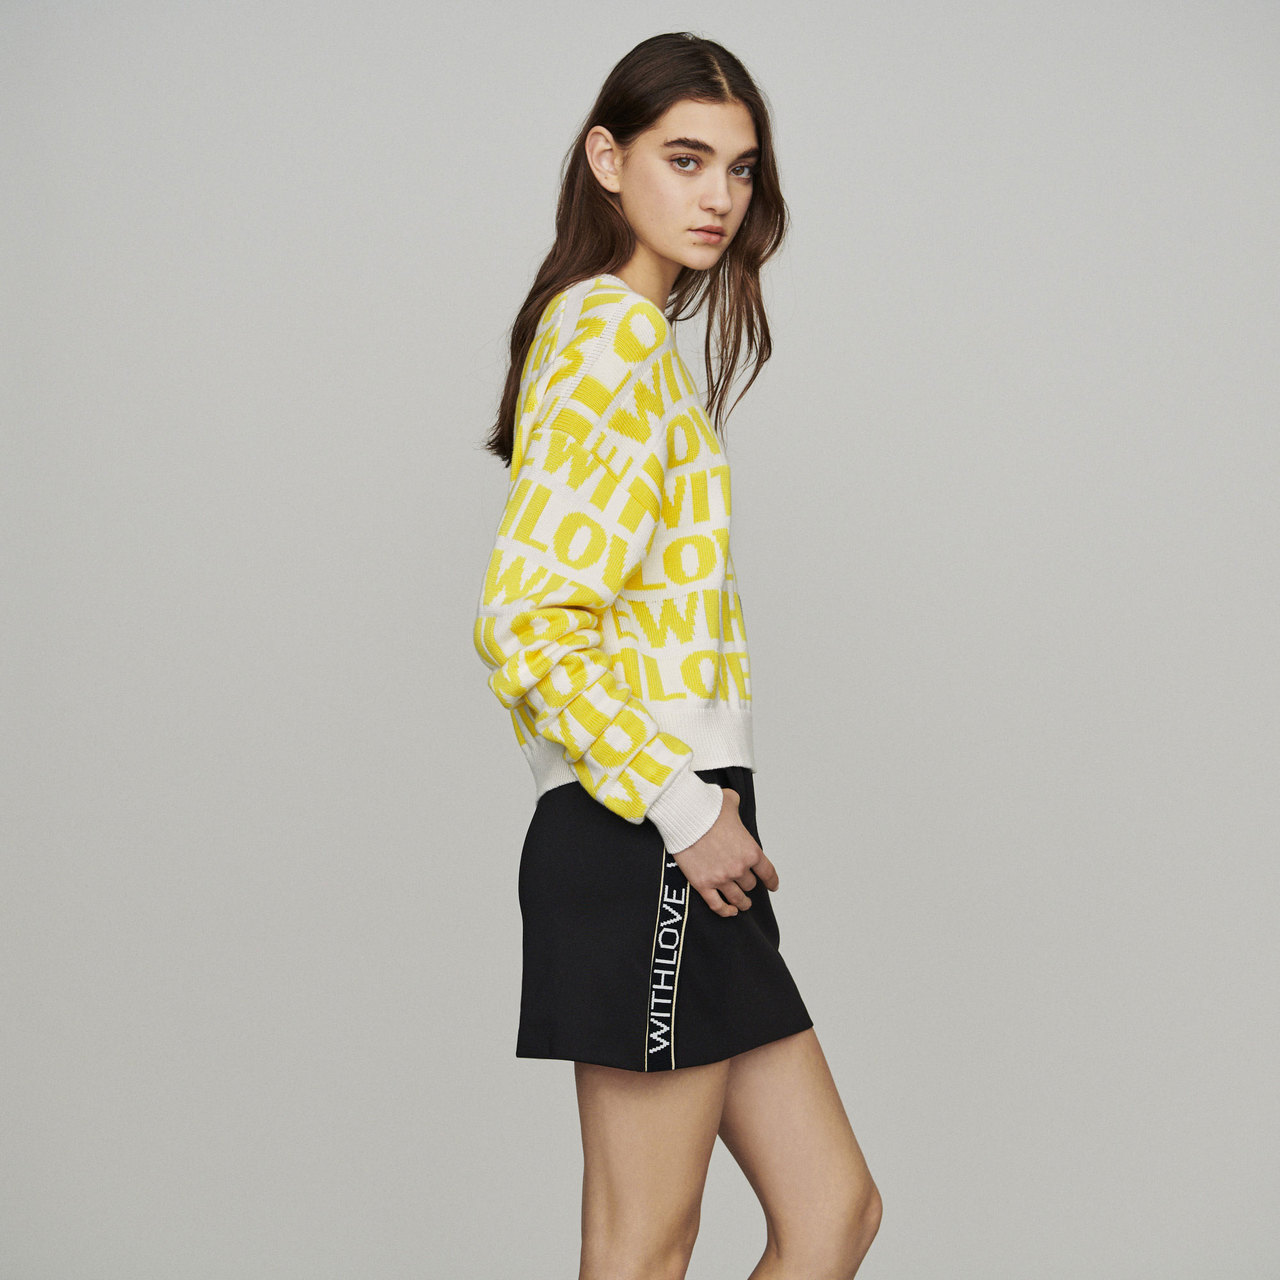 Jacquard Sweater With Slogan - Yellow